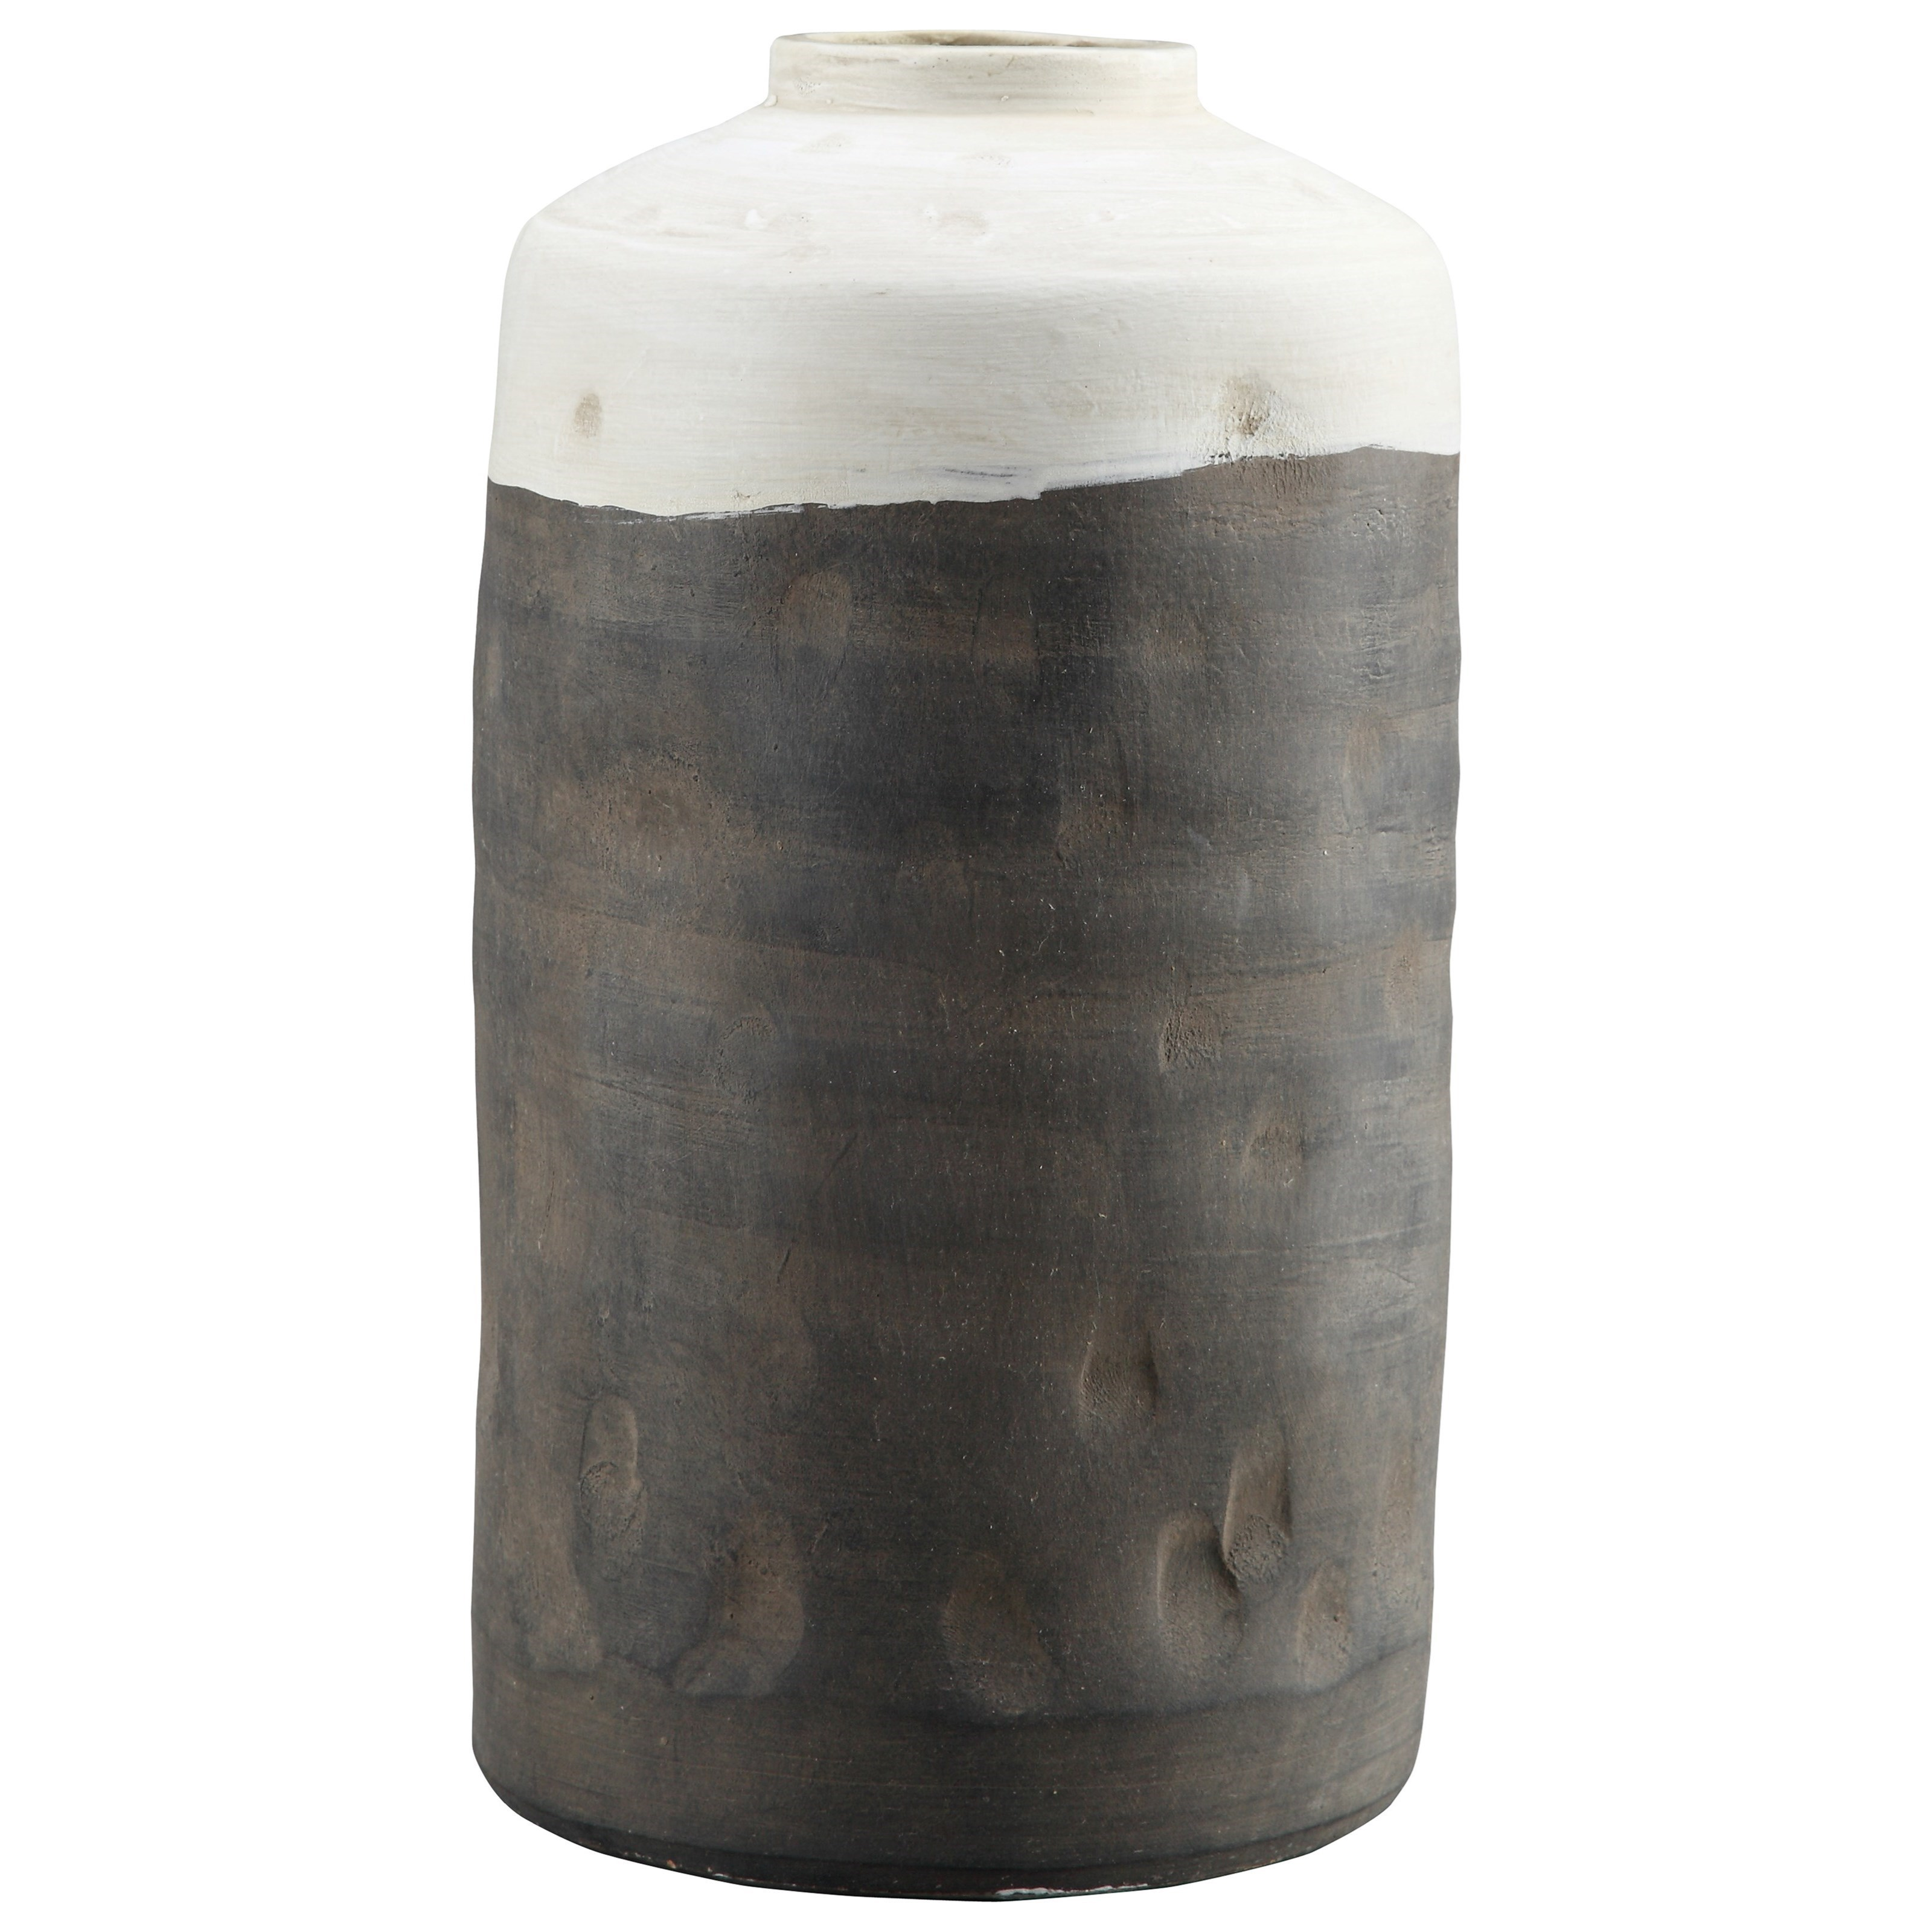 Decorative Accessories Tiptop Vase With A Rustic Design By Moeu0027s Home  Collection